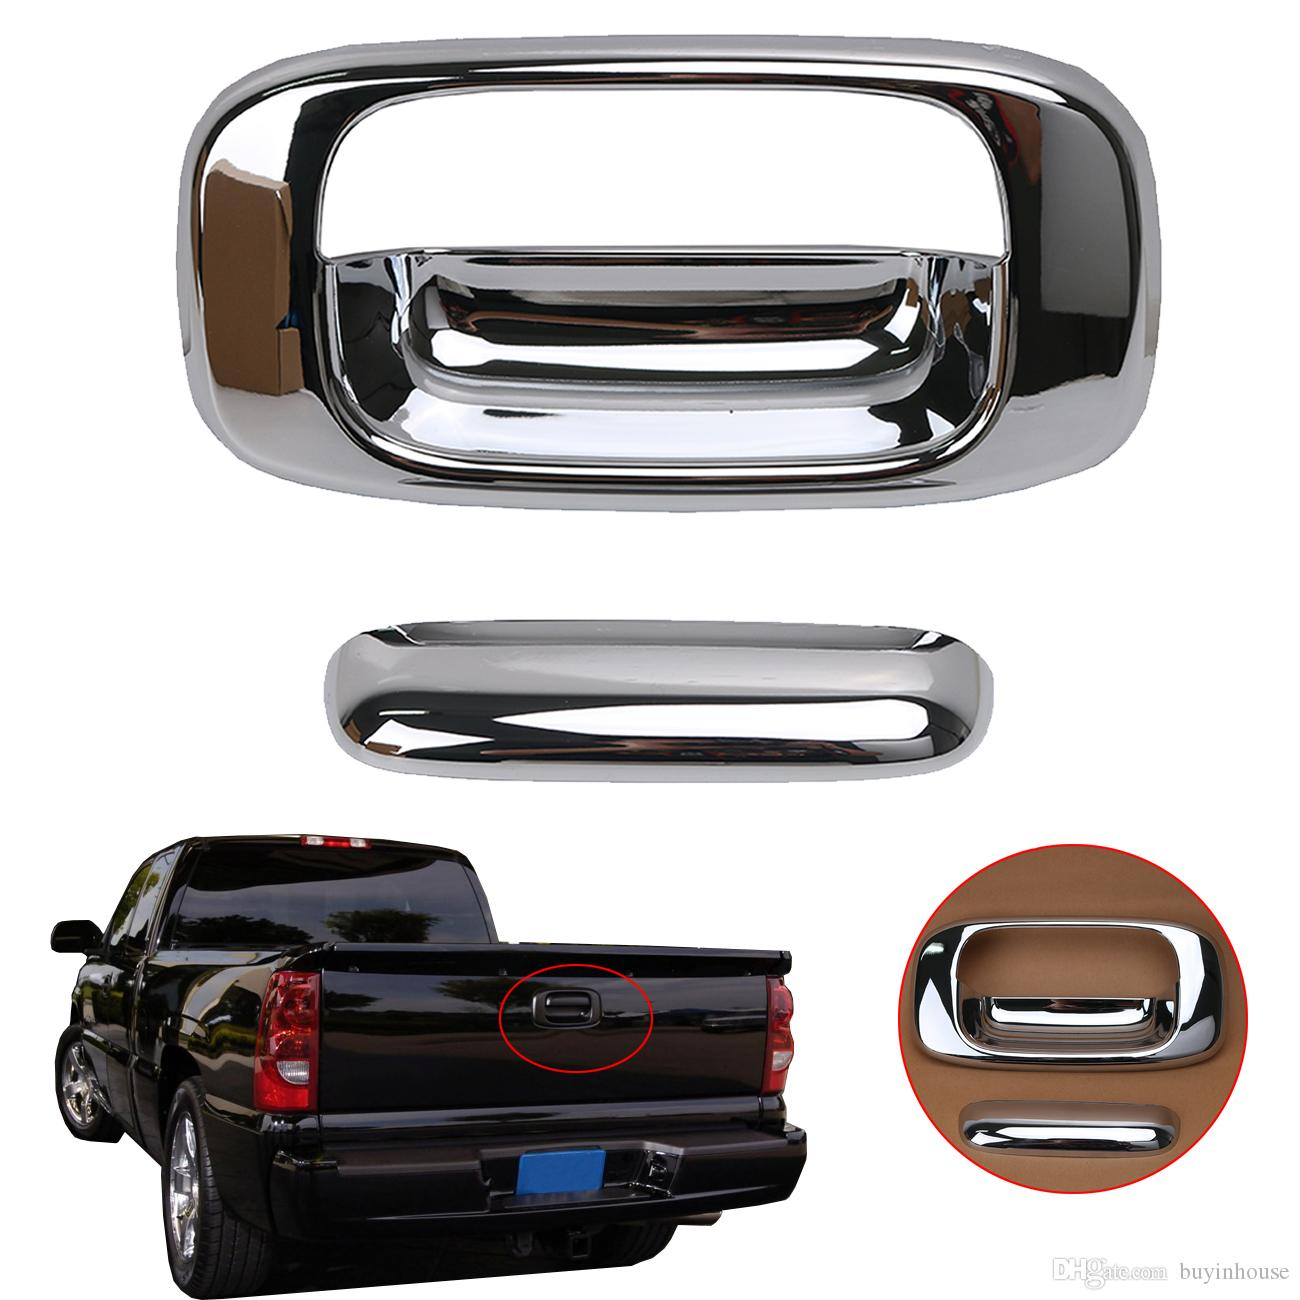 2018 Triple Chrome Abs Tailgate Door Handle Cover For Chevy Chevrolet Silverado/Gmc Sierra 1999 2006 #rc001 From Buyinhouse $15.13 | Dhgate.Com  sc 1 st  DHgate.com & 2018 Triple Chrome Abs Tailgate Door Handle Cover For Chevy ...